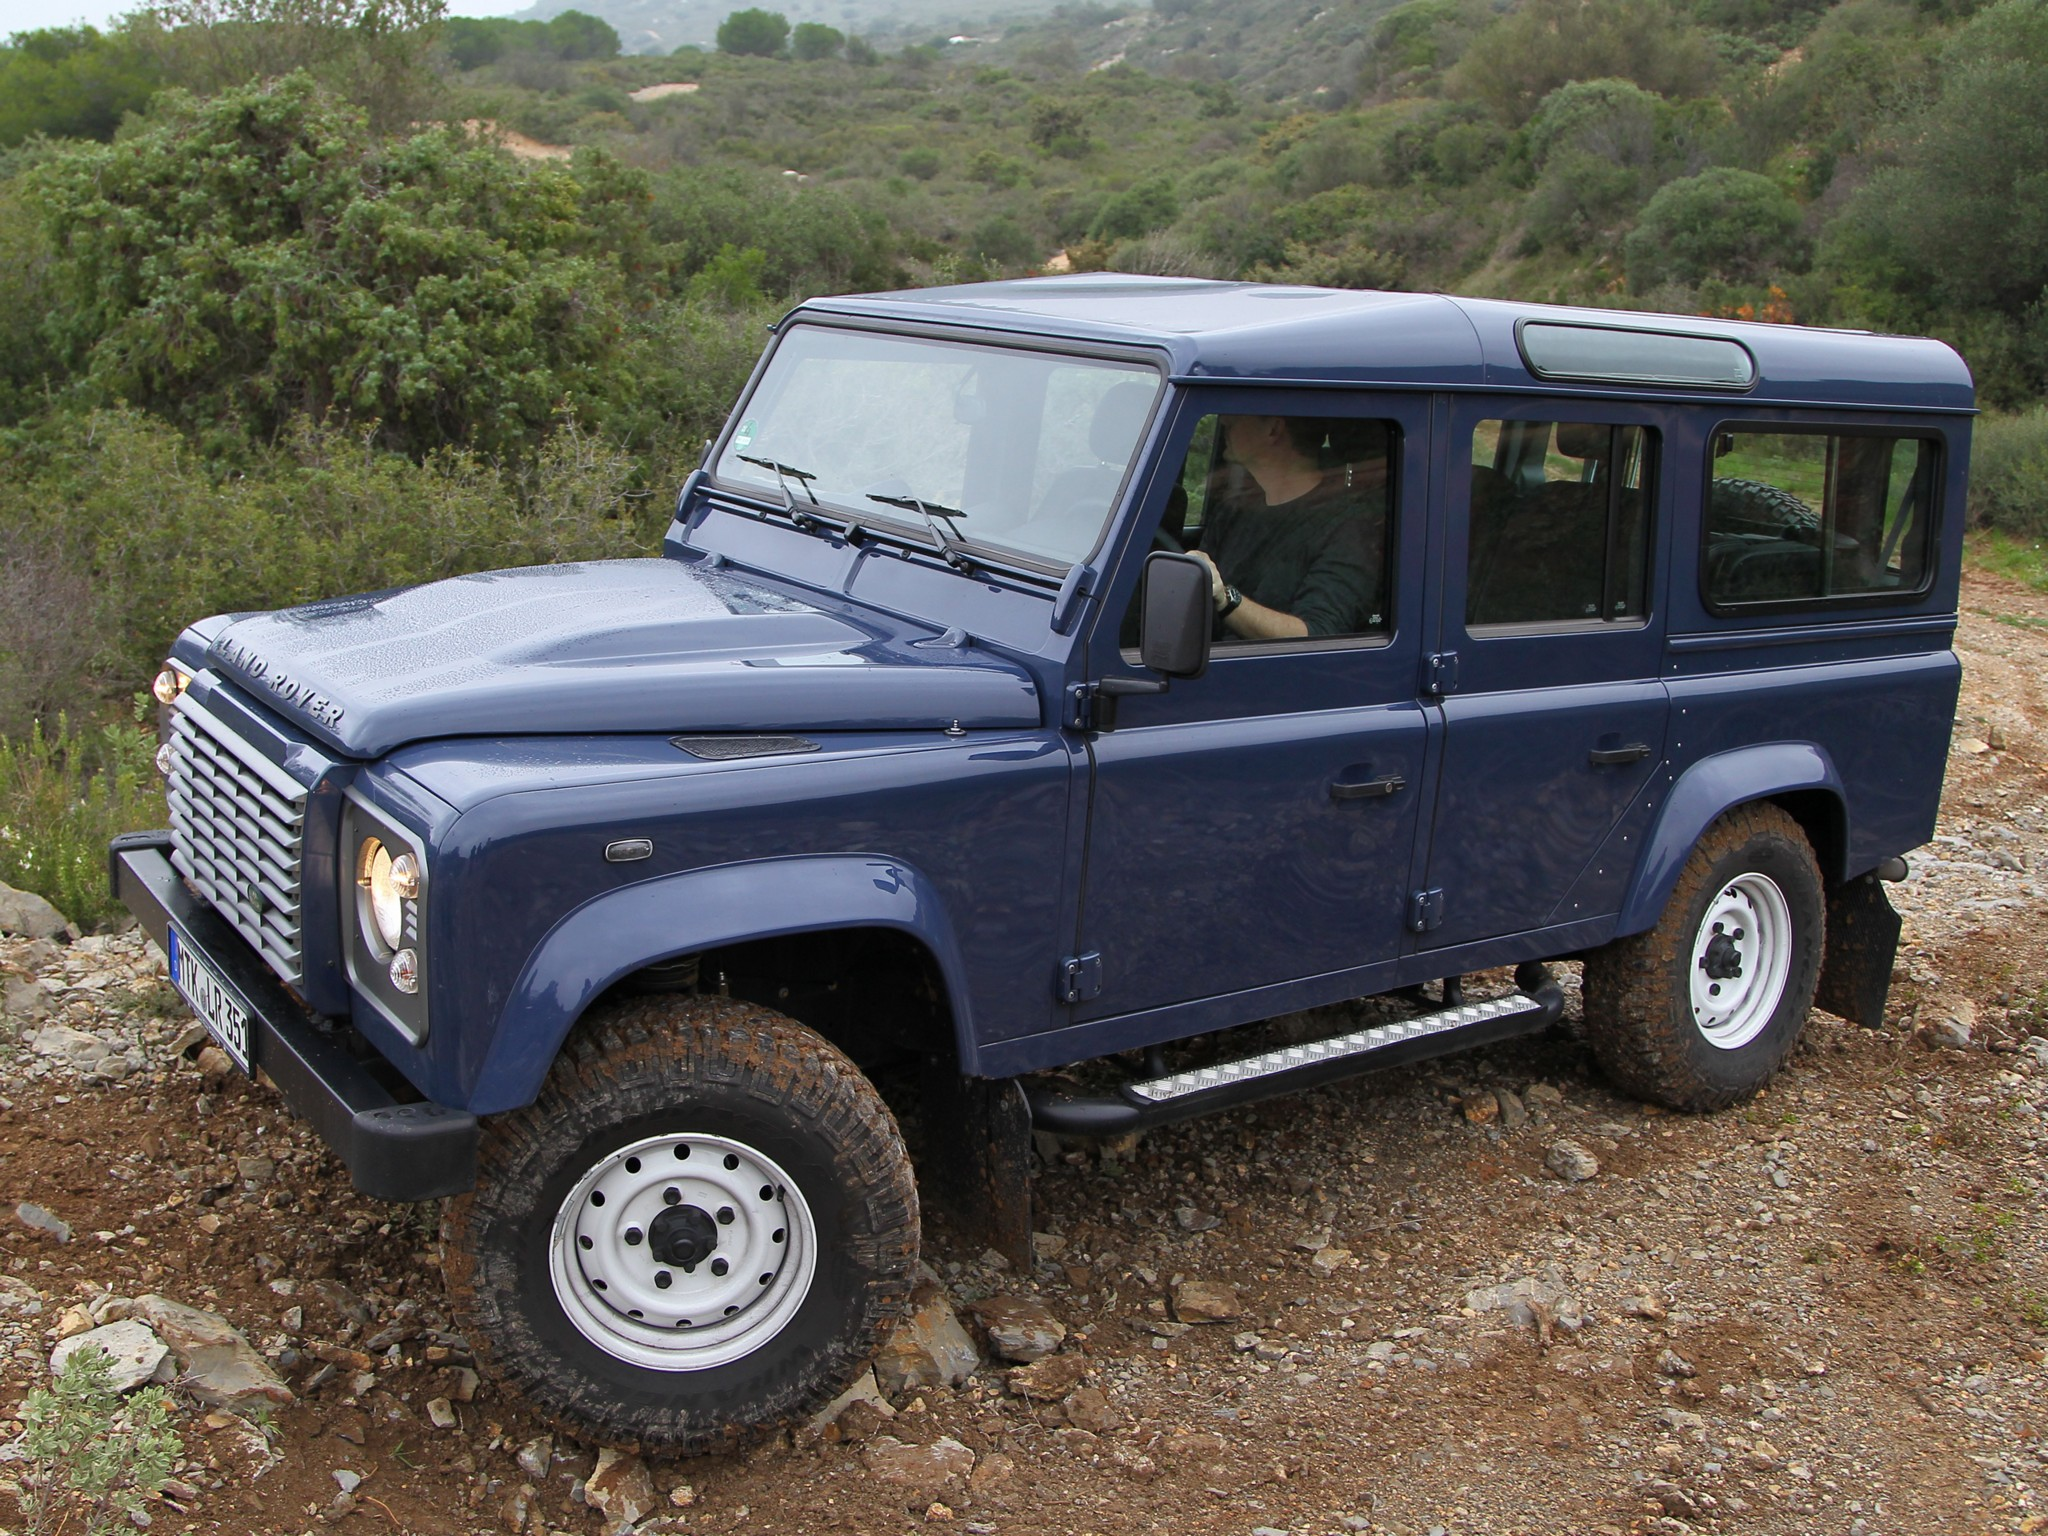 2007 Land Rover Defender 110 Stationwagon Eu Spec 4x4 Suv